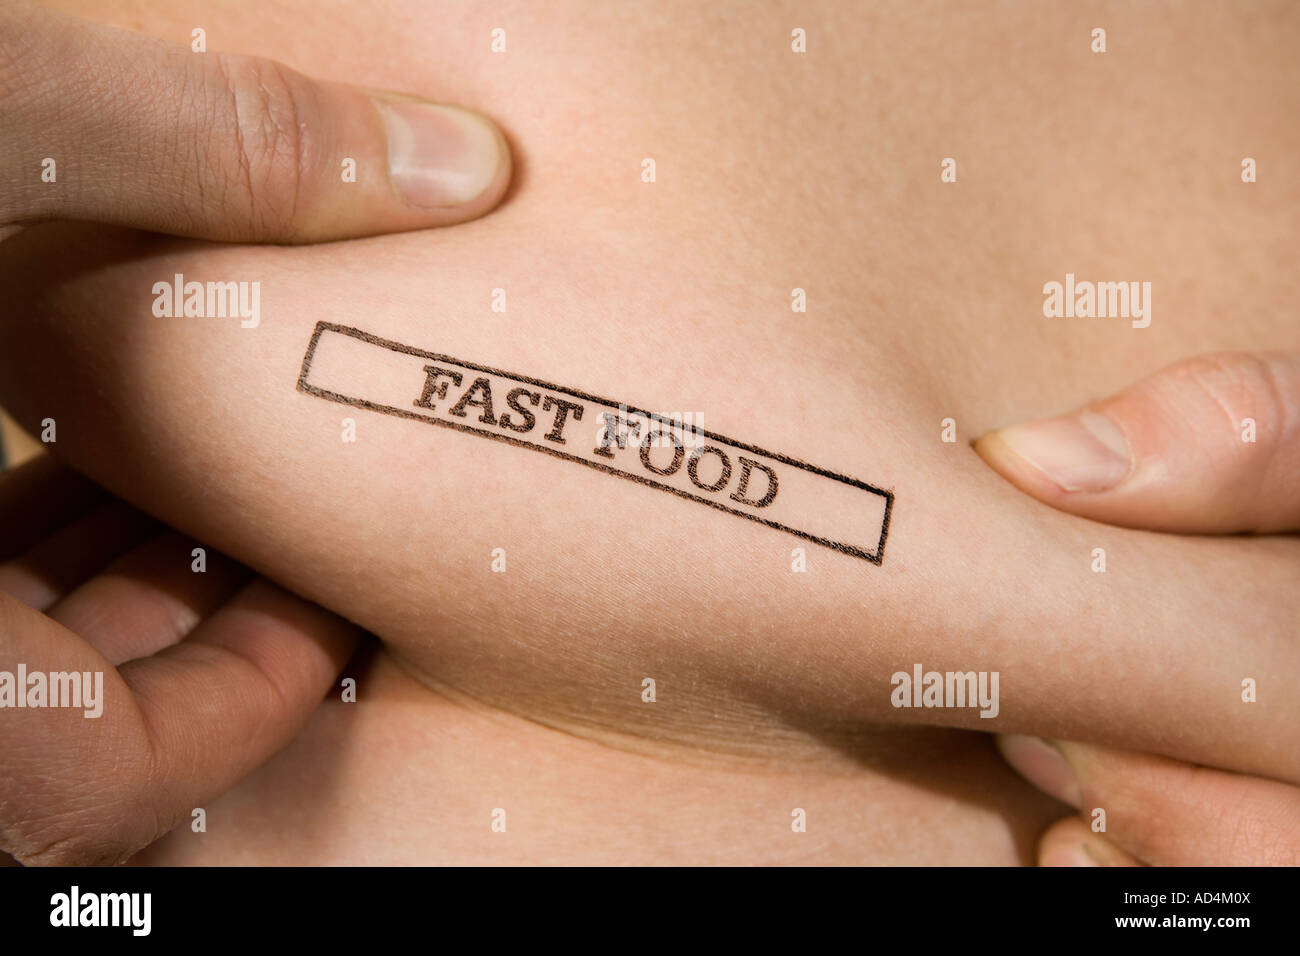 A man pinching part of his abdomen stamped 'Fast Food' - Stock Image